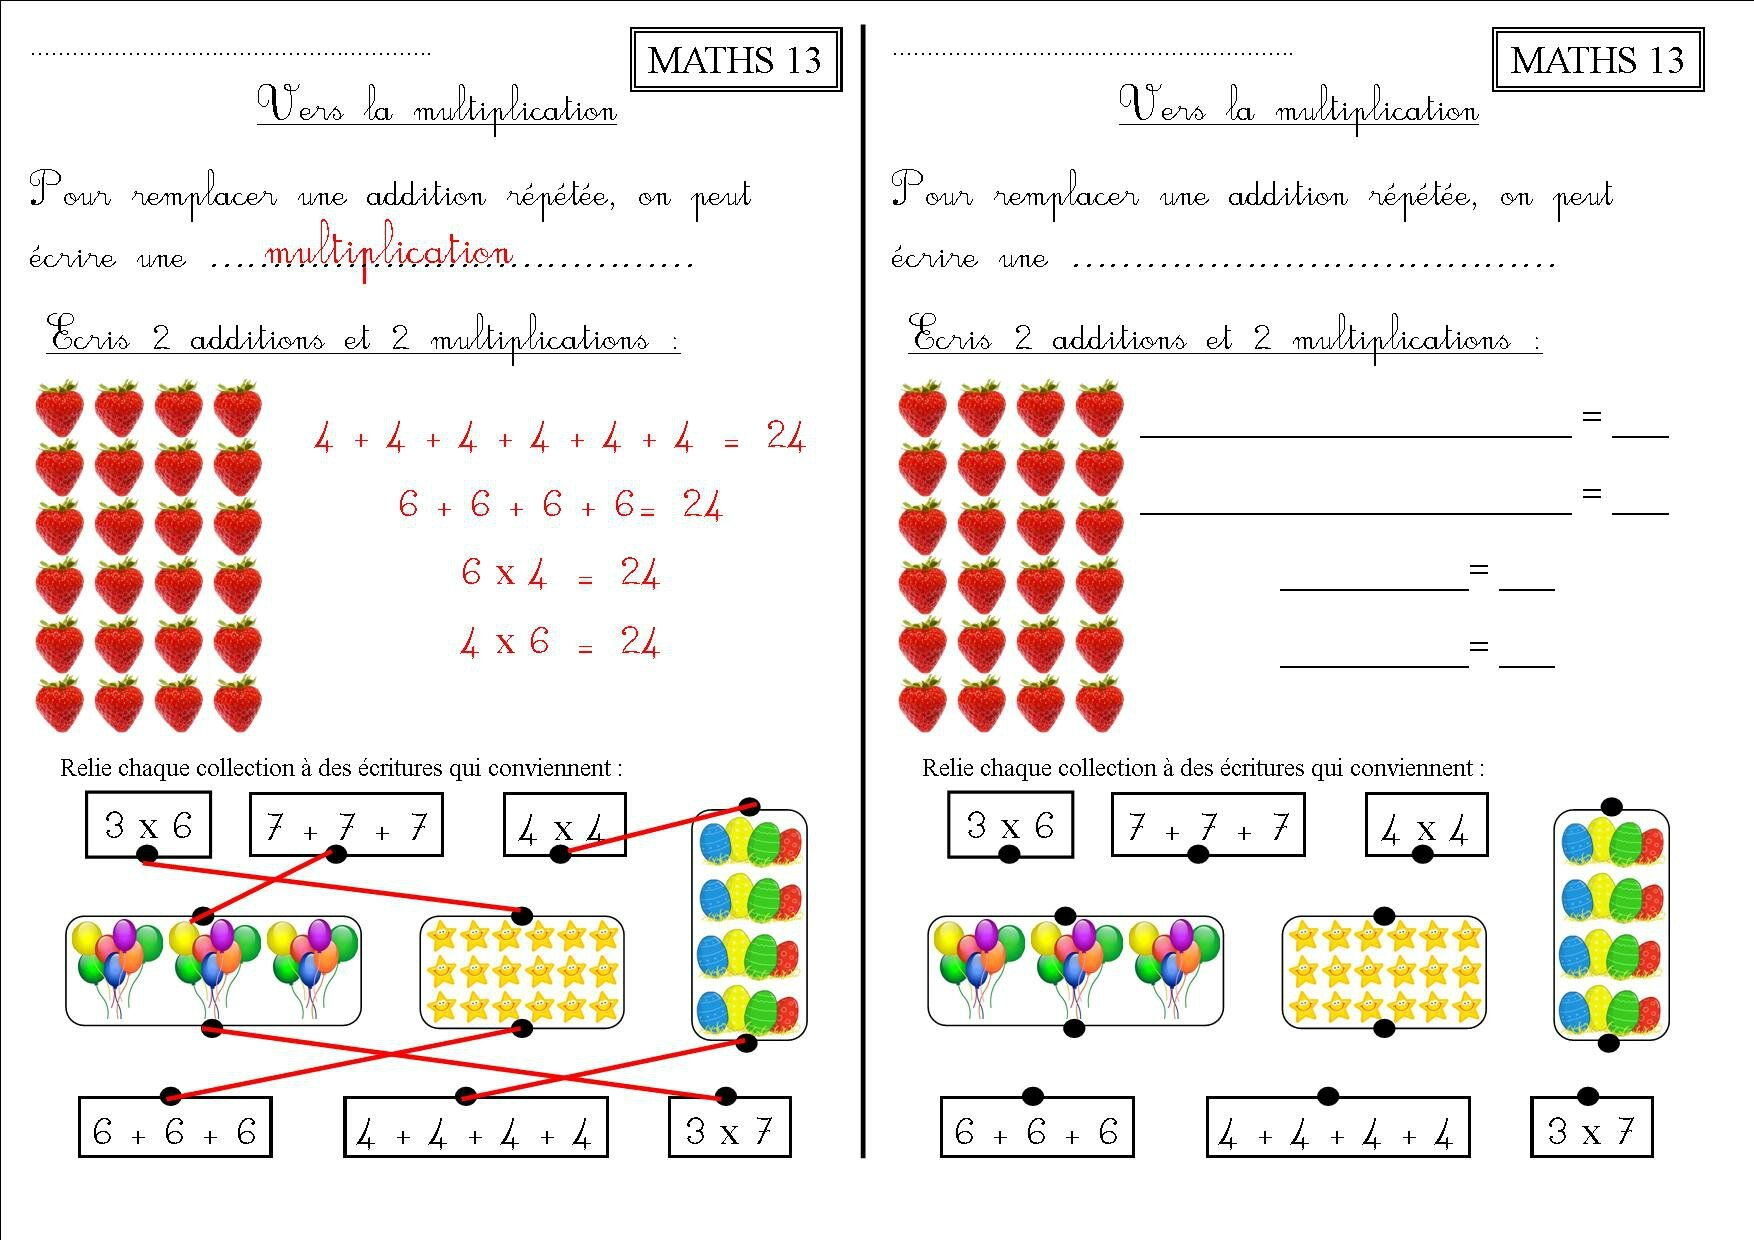 Maths 13 ce1 vers la multiplication la classe des ce for Mathematique ce2 multiplication